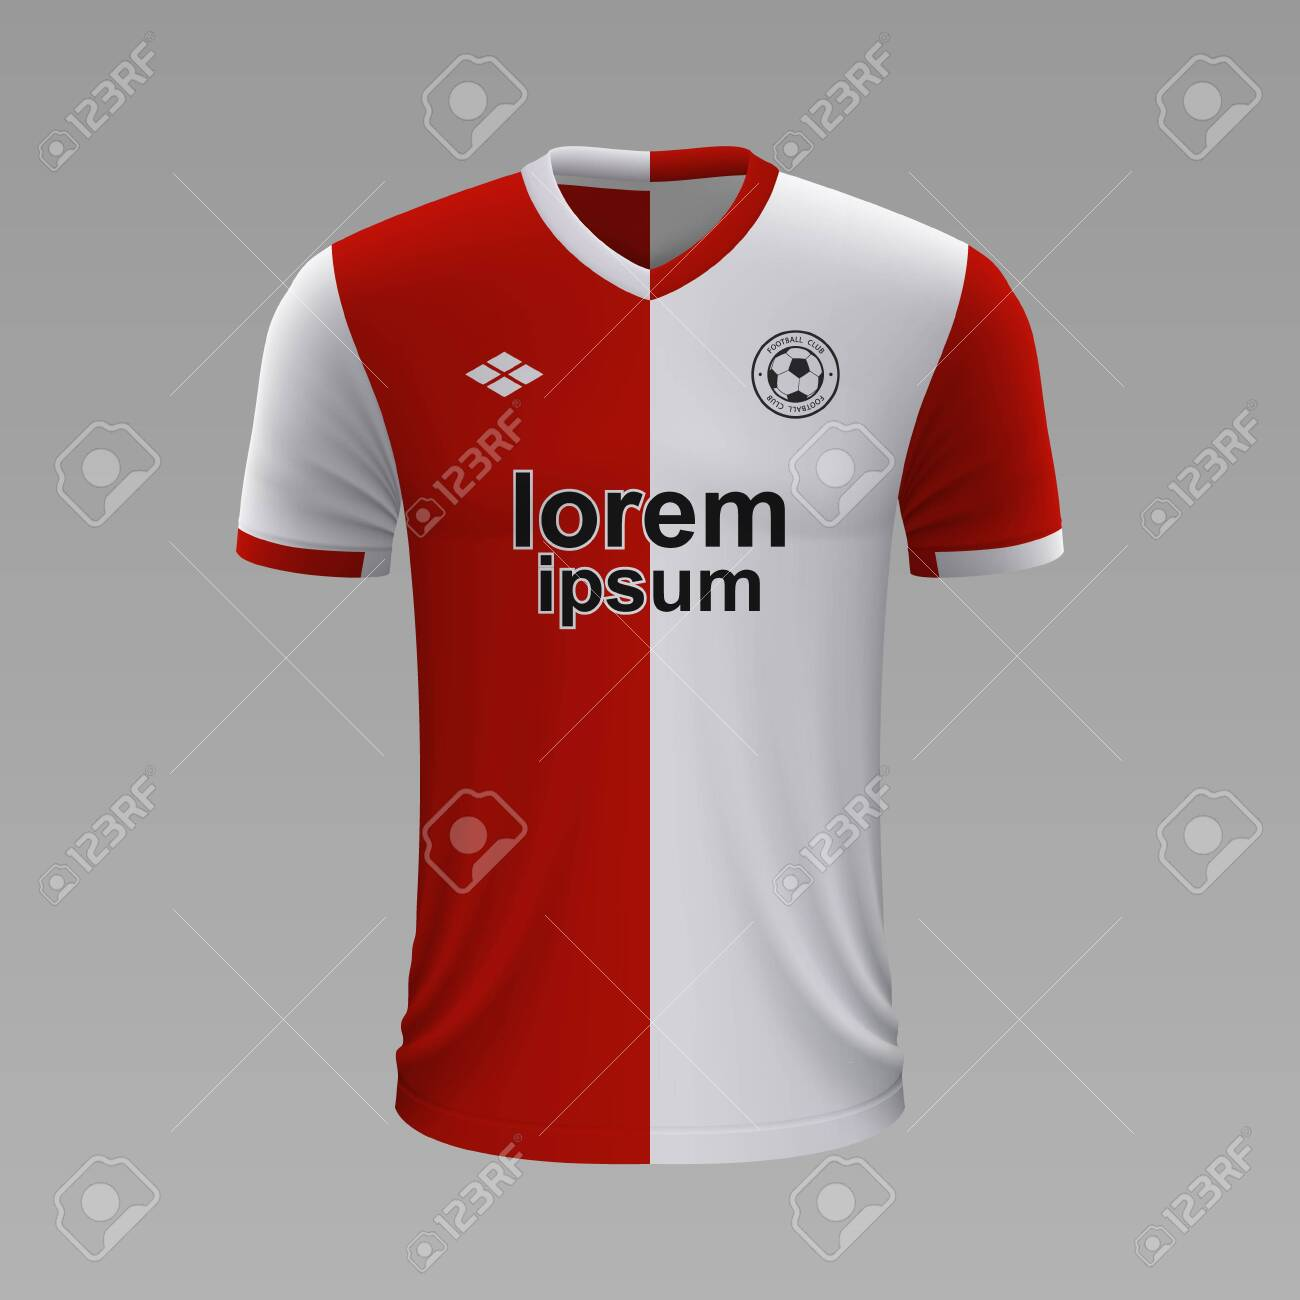 Realistic Soccer Shirt Feyenoord 2020 Jersey Template For Football Royalty Free Cliparts Vectors And Stock Illustration Image 129450946